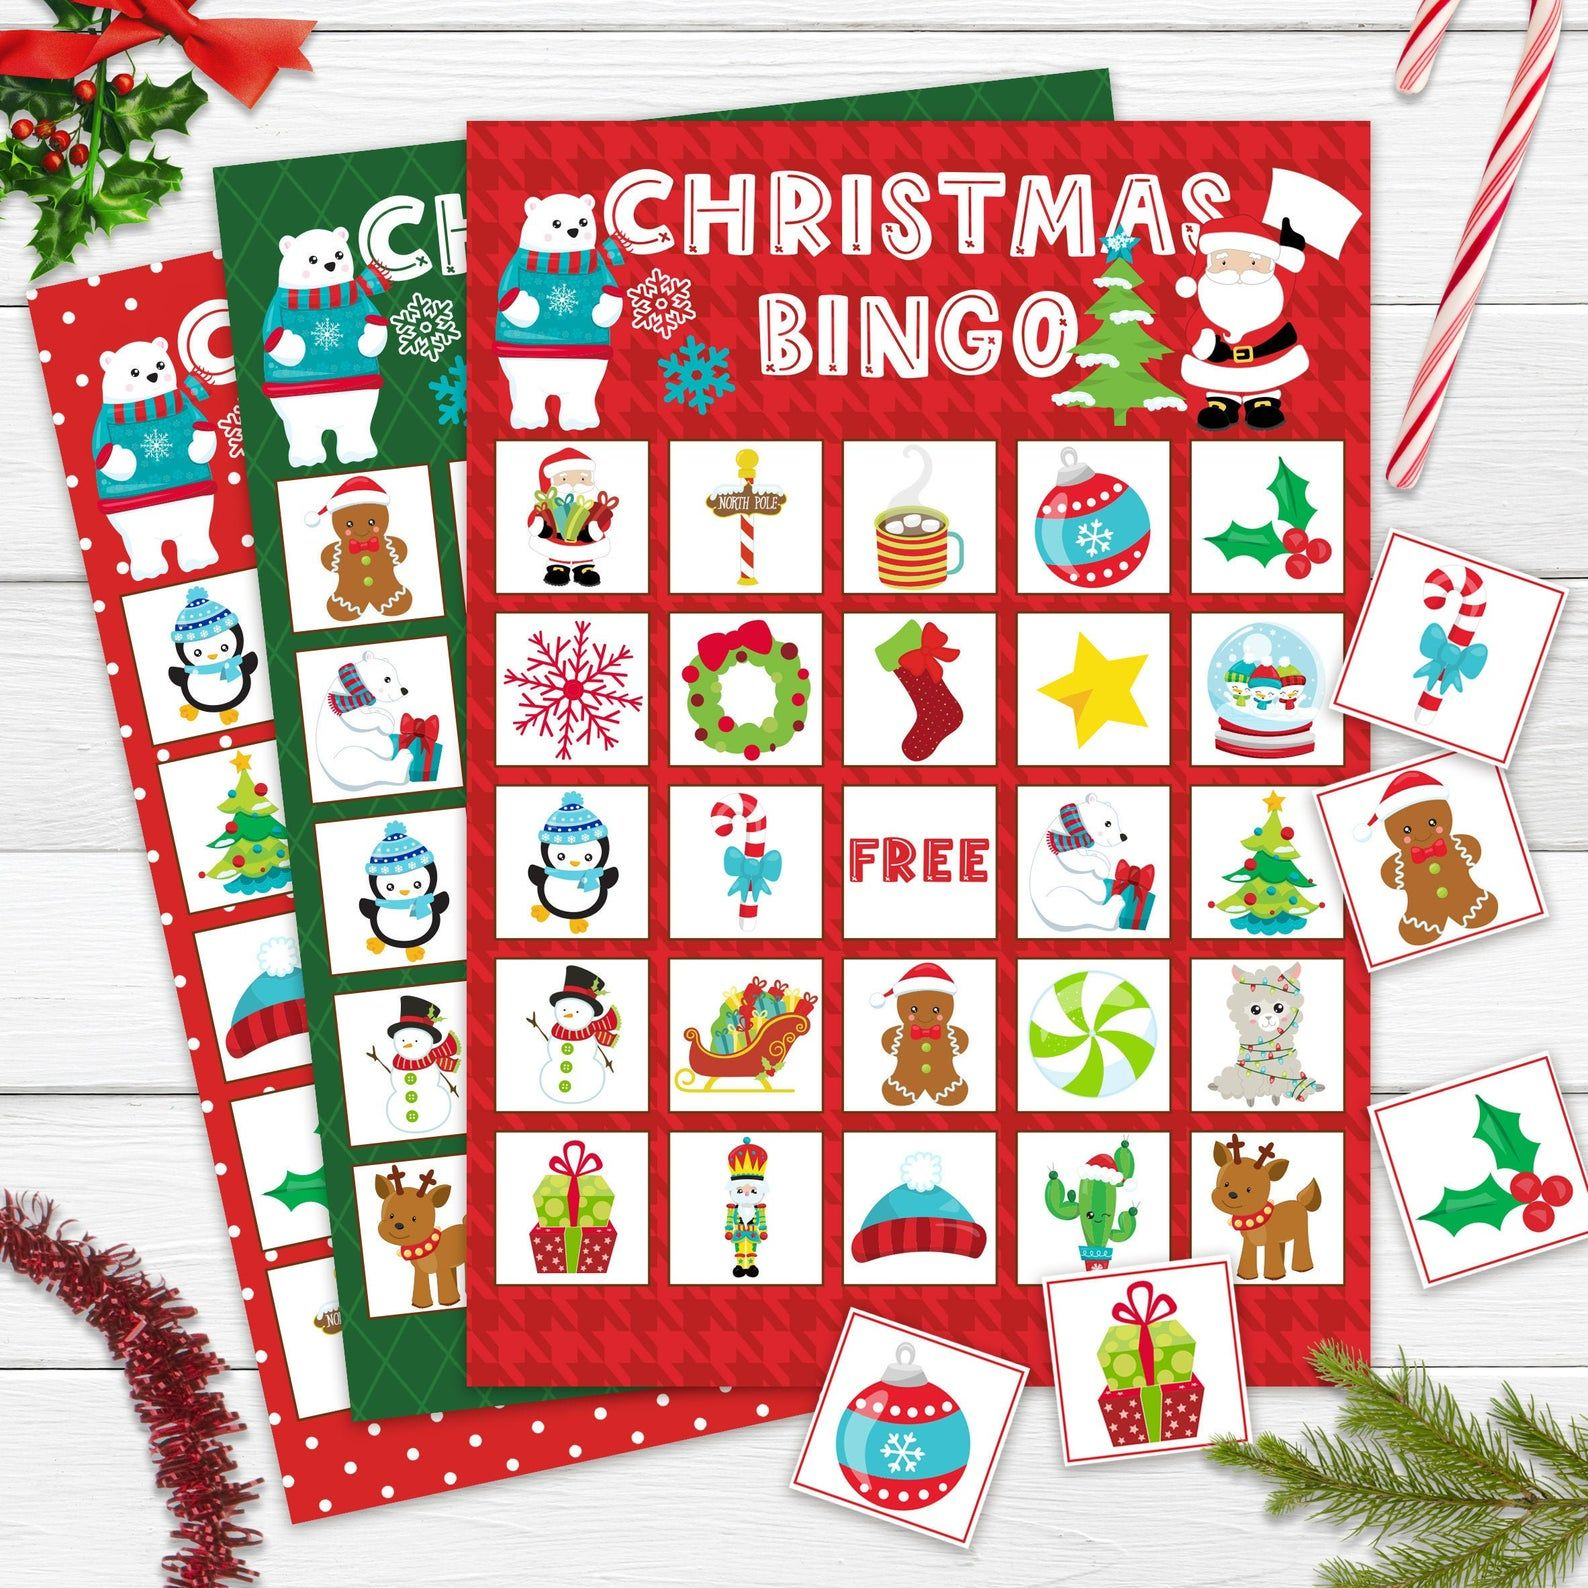 When Is Christmas In July 2020 Celebration On Etsy Christmas Bingo Printable Christmas in July Bingo For Kids | Etsy